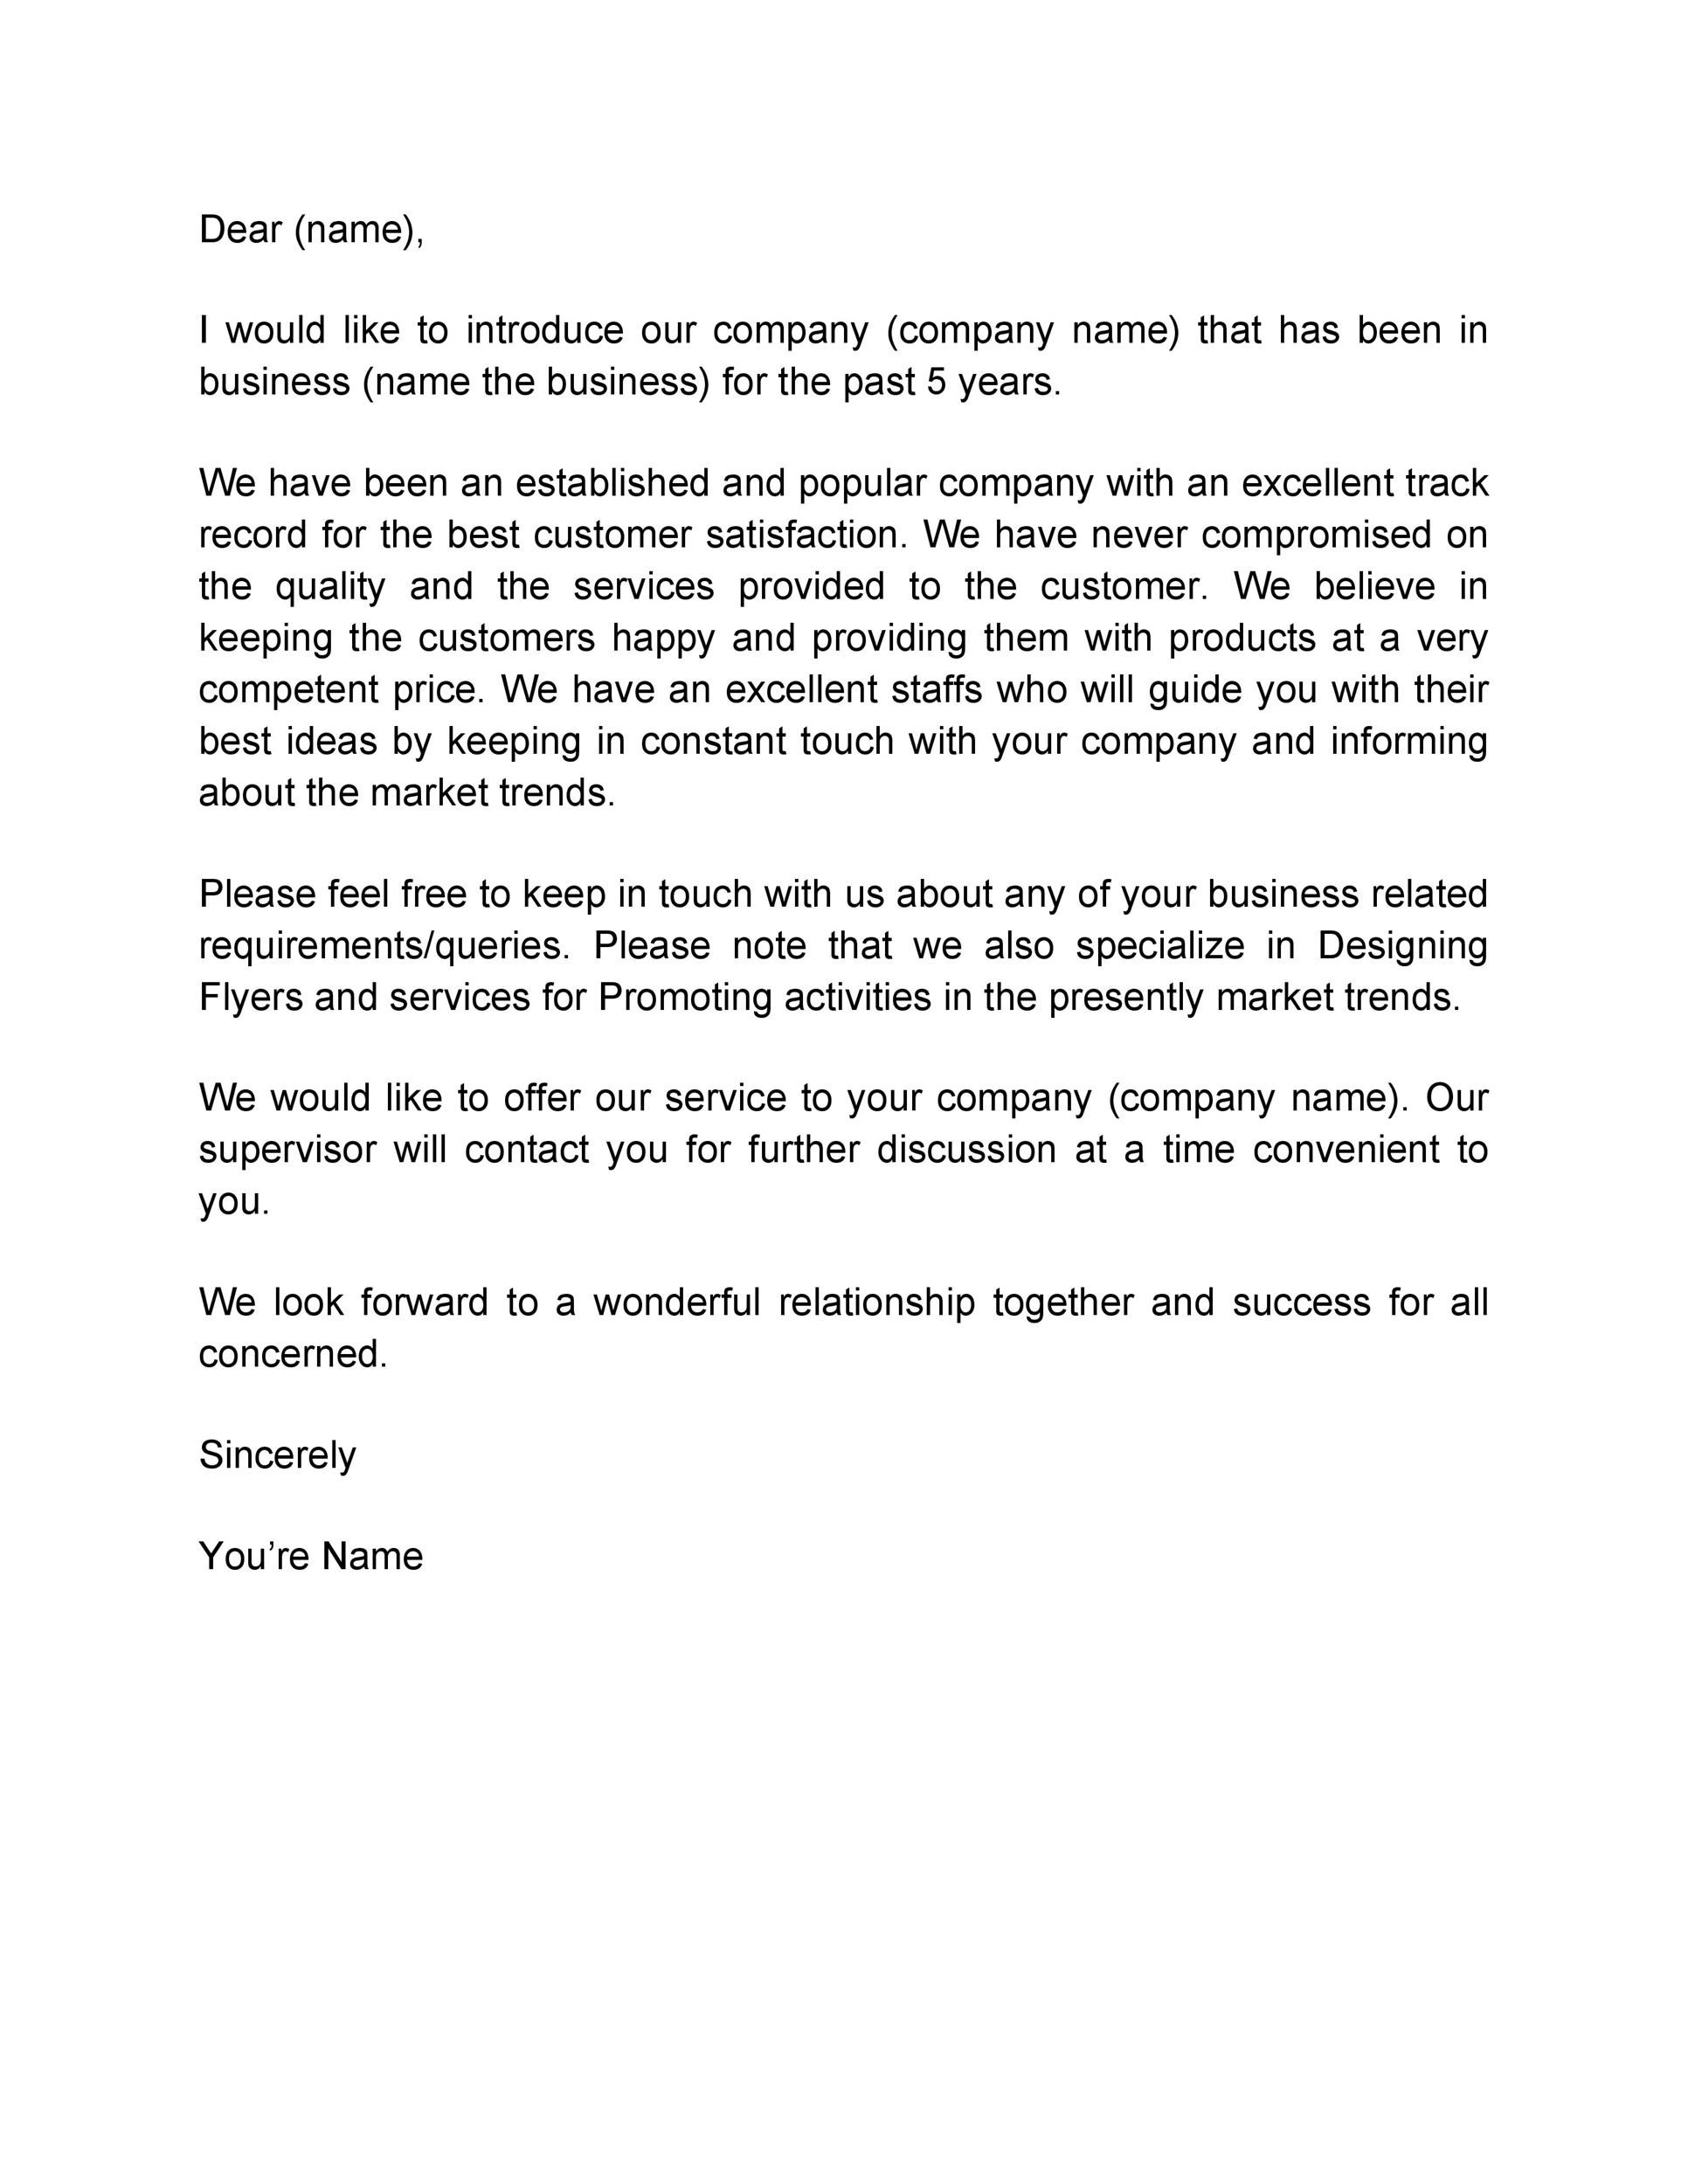 Free business introduction letter 19